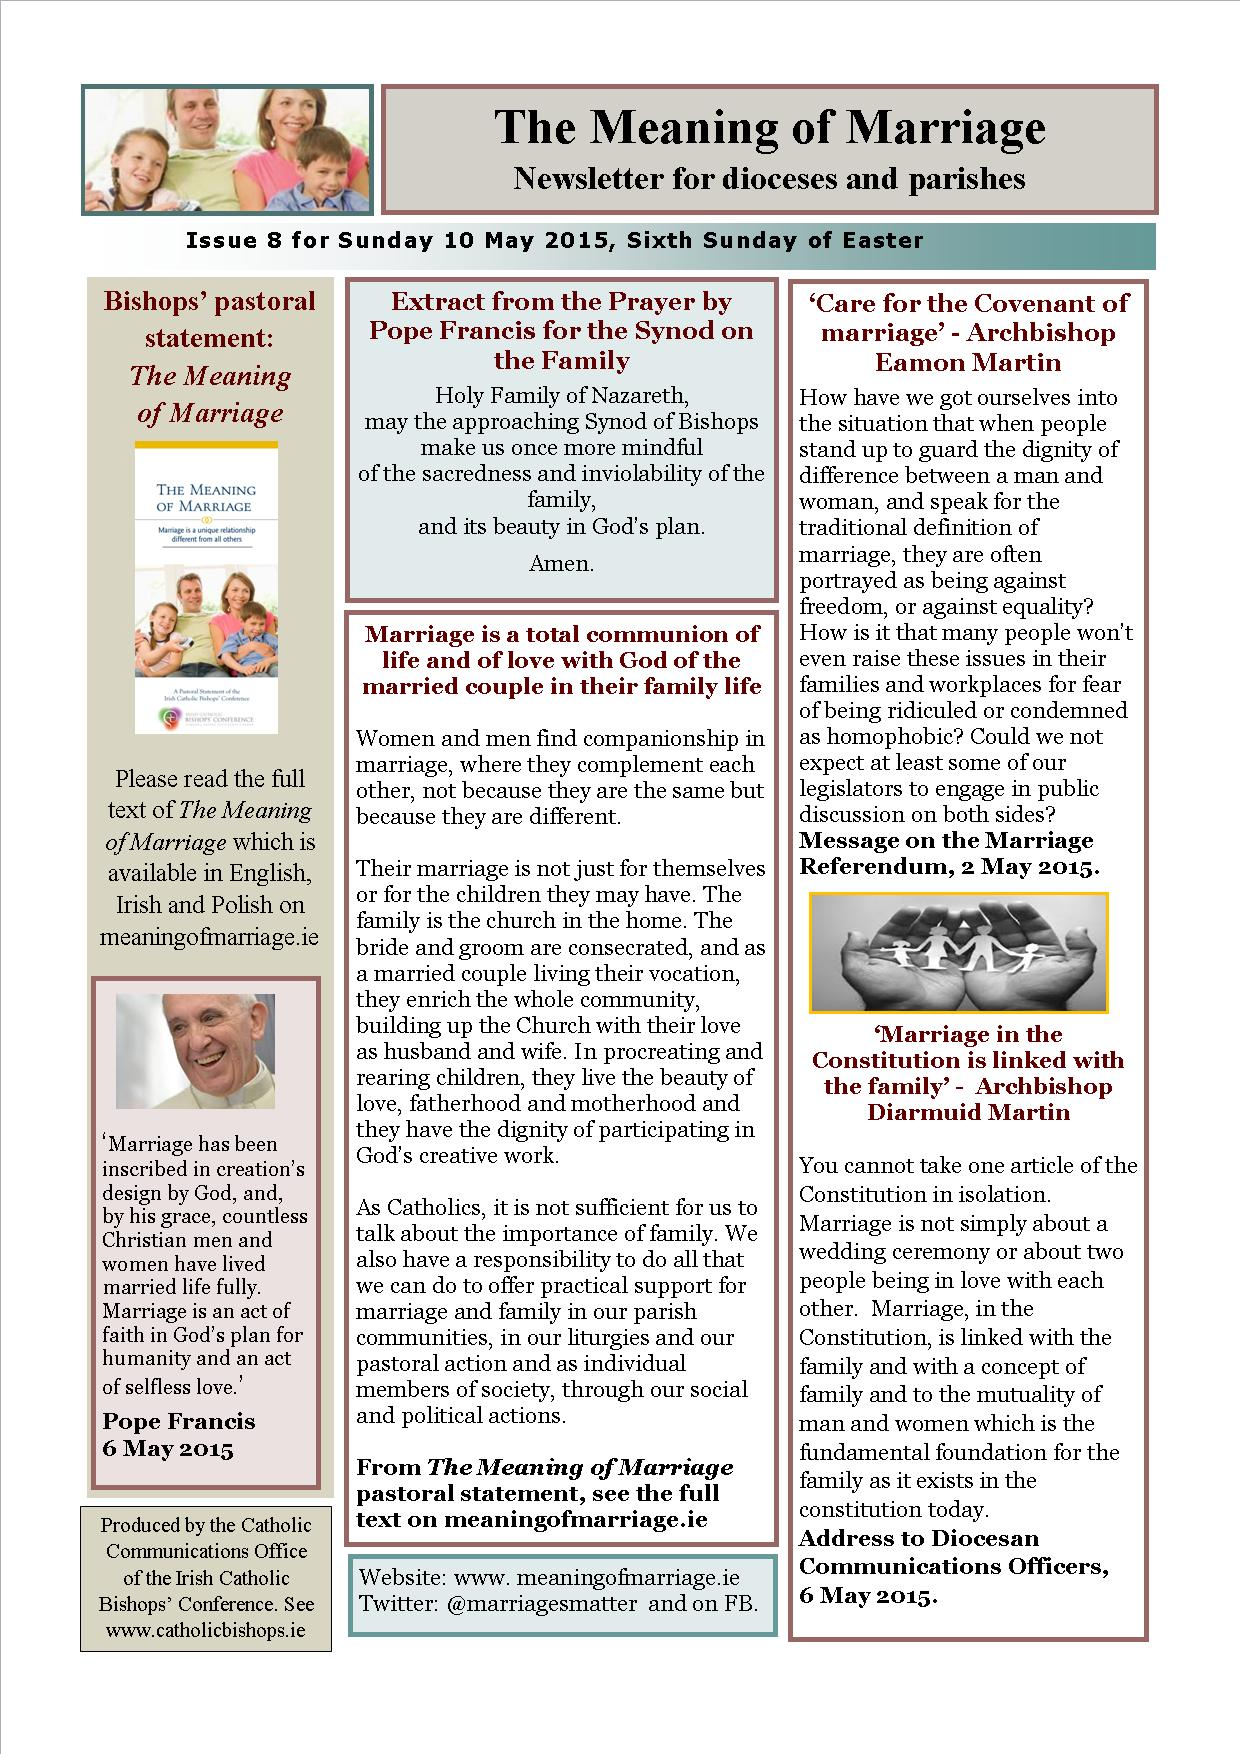 The Meaning of Marriage newsletter for Sunday 10 May 2015